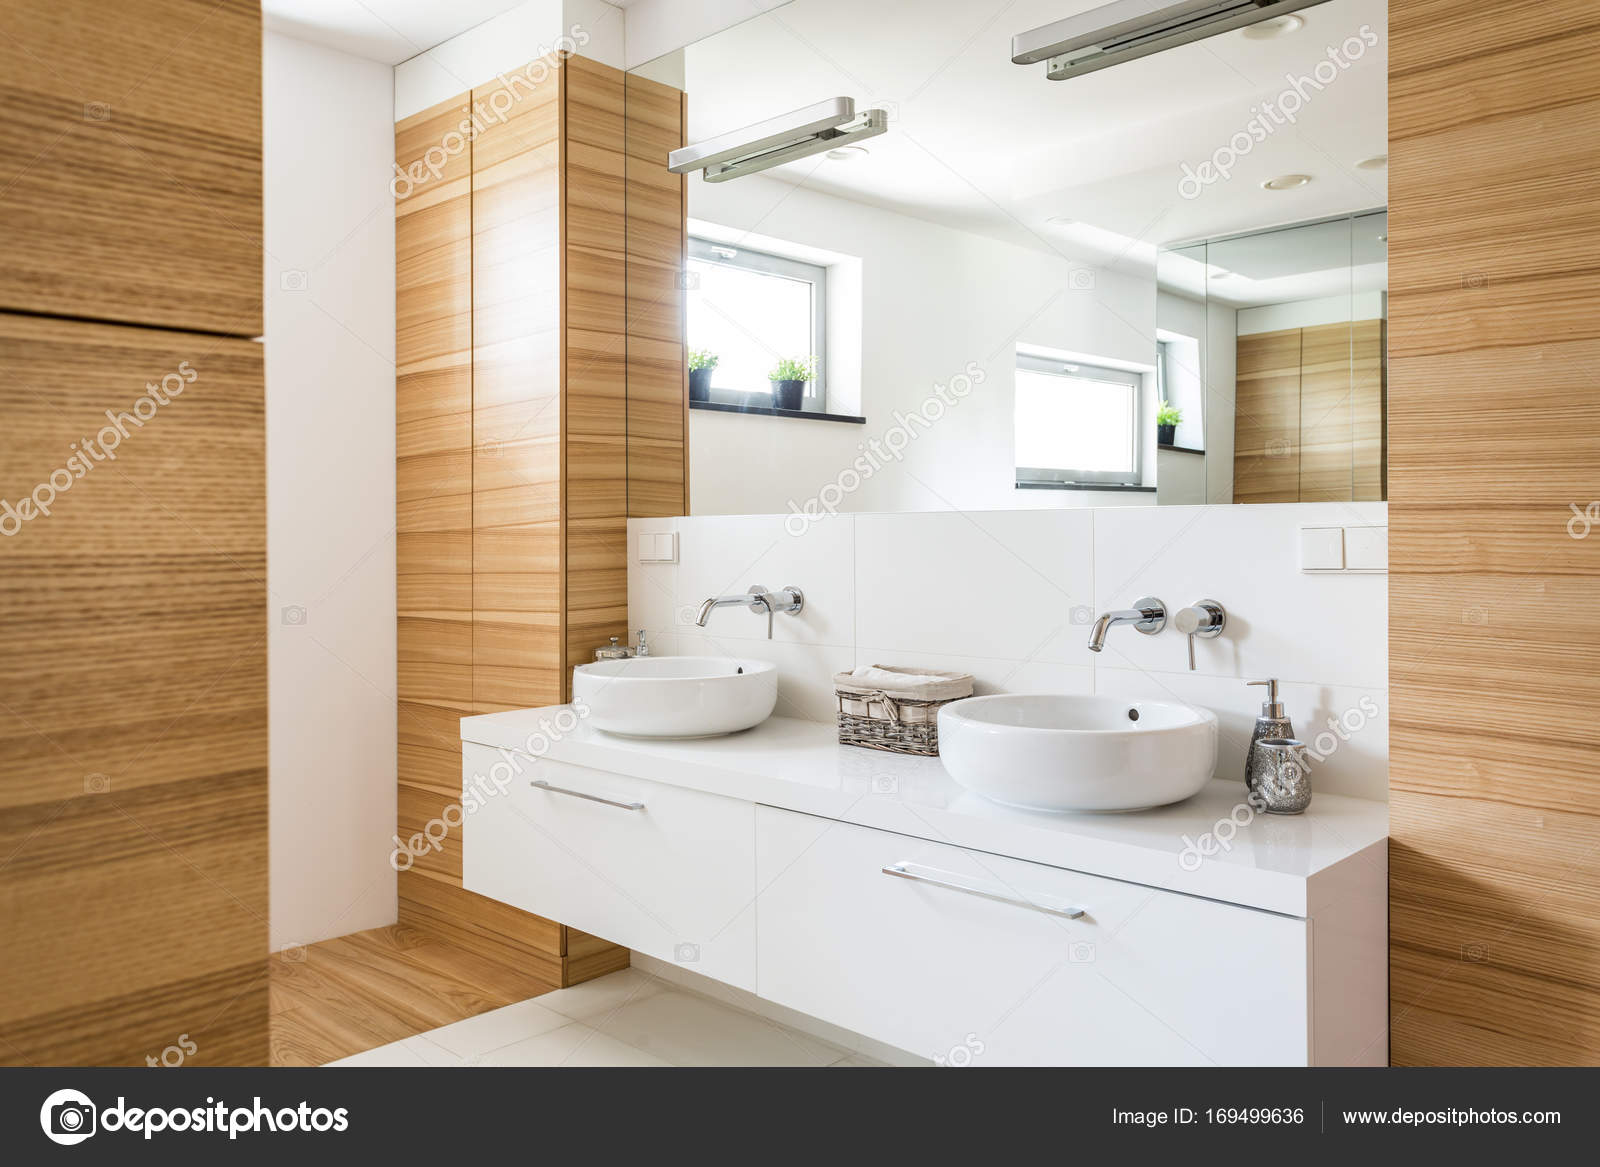 Hout in de badkamer design u2014 stockfoto © photographee.eu #169499636